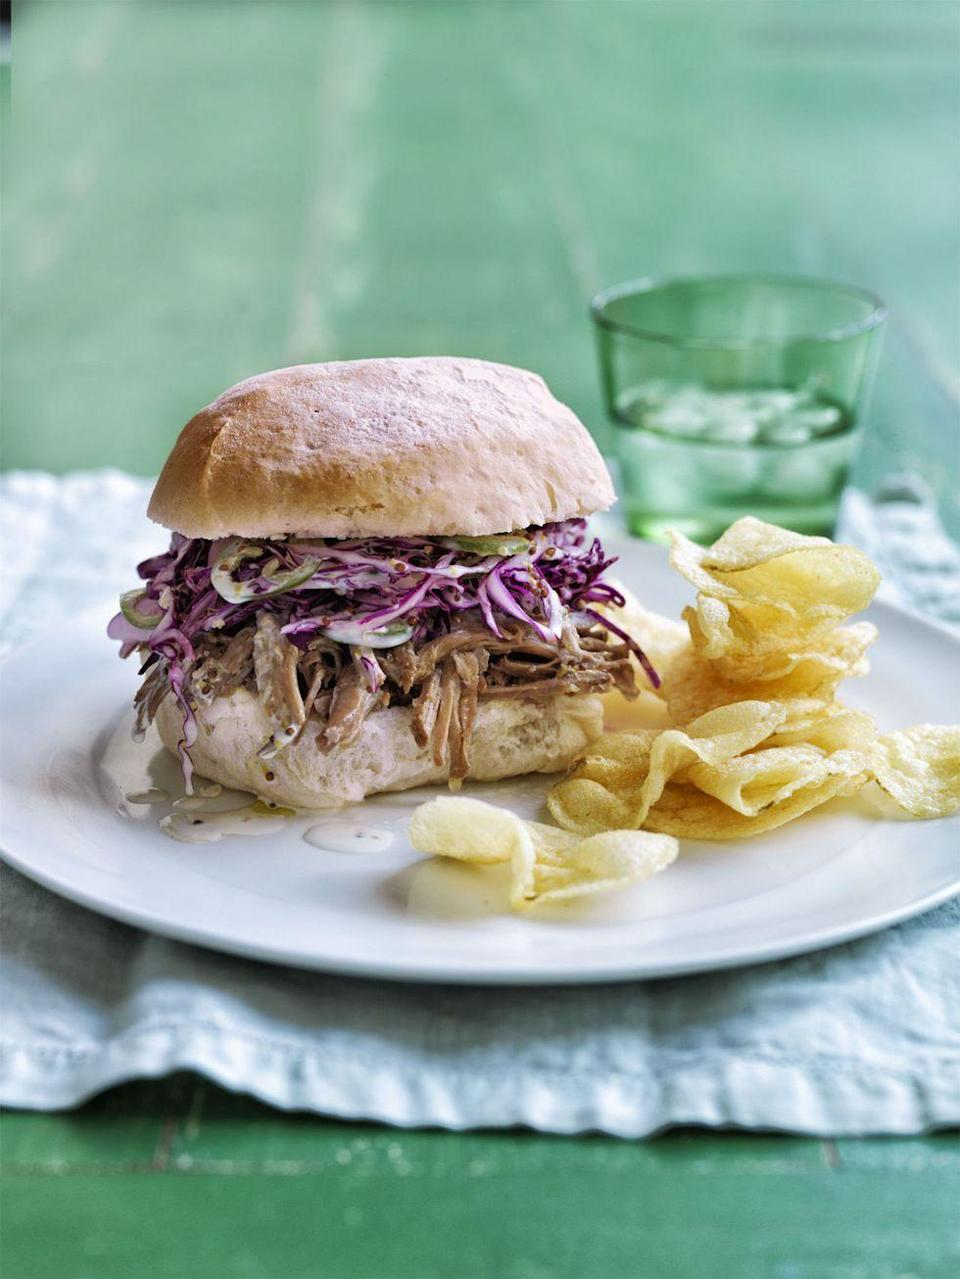 """<p>If you're in the mood for some North Carolina-style BBQ, these juicy pork sandwiches will satisfy those tastebuds. The secret is in the sauce: a mix of cider vinegar, brown sugar, red pepper, and salt. Chop up some cabbage and jalapeño for your slaw and you've got a refreshing, yet delightfully spicy topping. </p><p><em><a href=""""https://www.womansday.com/food-recipes/food-drinks/recipes/a54830/zesty-pork-and-slaw-sandwiches-recipe/"""" rel=""""nofollow noopener"""" target=""""_blank"""" data-ylk=""""slk:Get the recipe from Woman's Day »"""" class=""""link rapid-noclick-resp"""">Get the recipe from Woman's Day »</a></em></p>"""